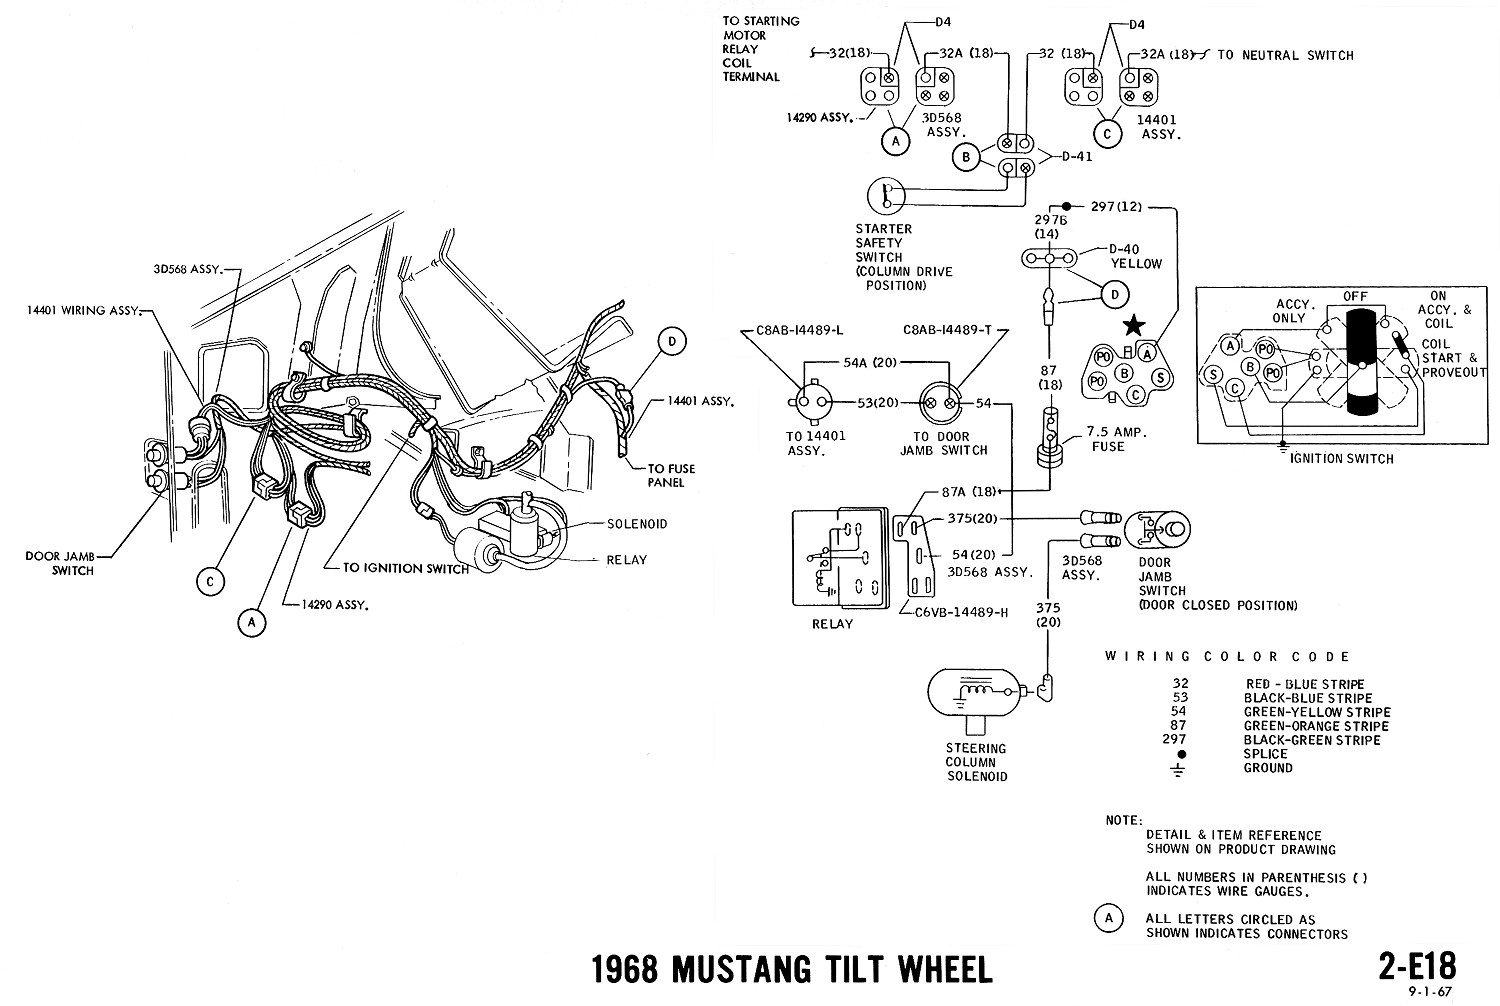 1968 mustang transmission selector wiring diagram example rh huntervalleyhotels co 1968 Mustang Heater Motor Wiring Diagram 68 Mustang Wiring Diagram